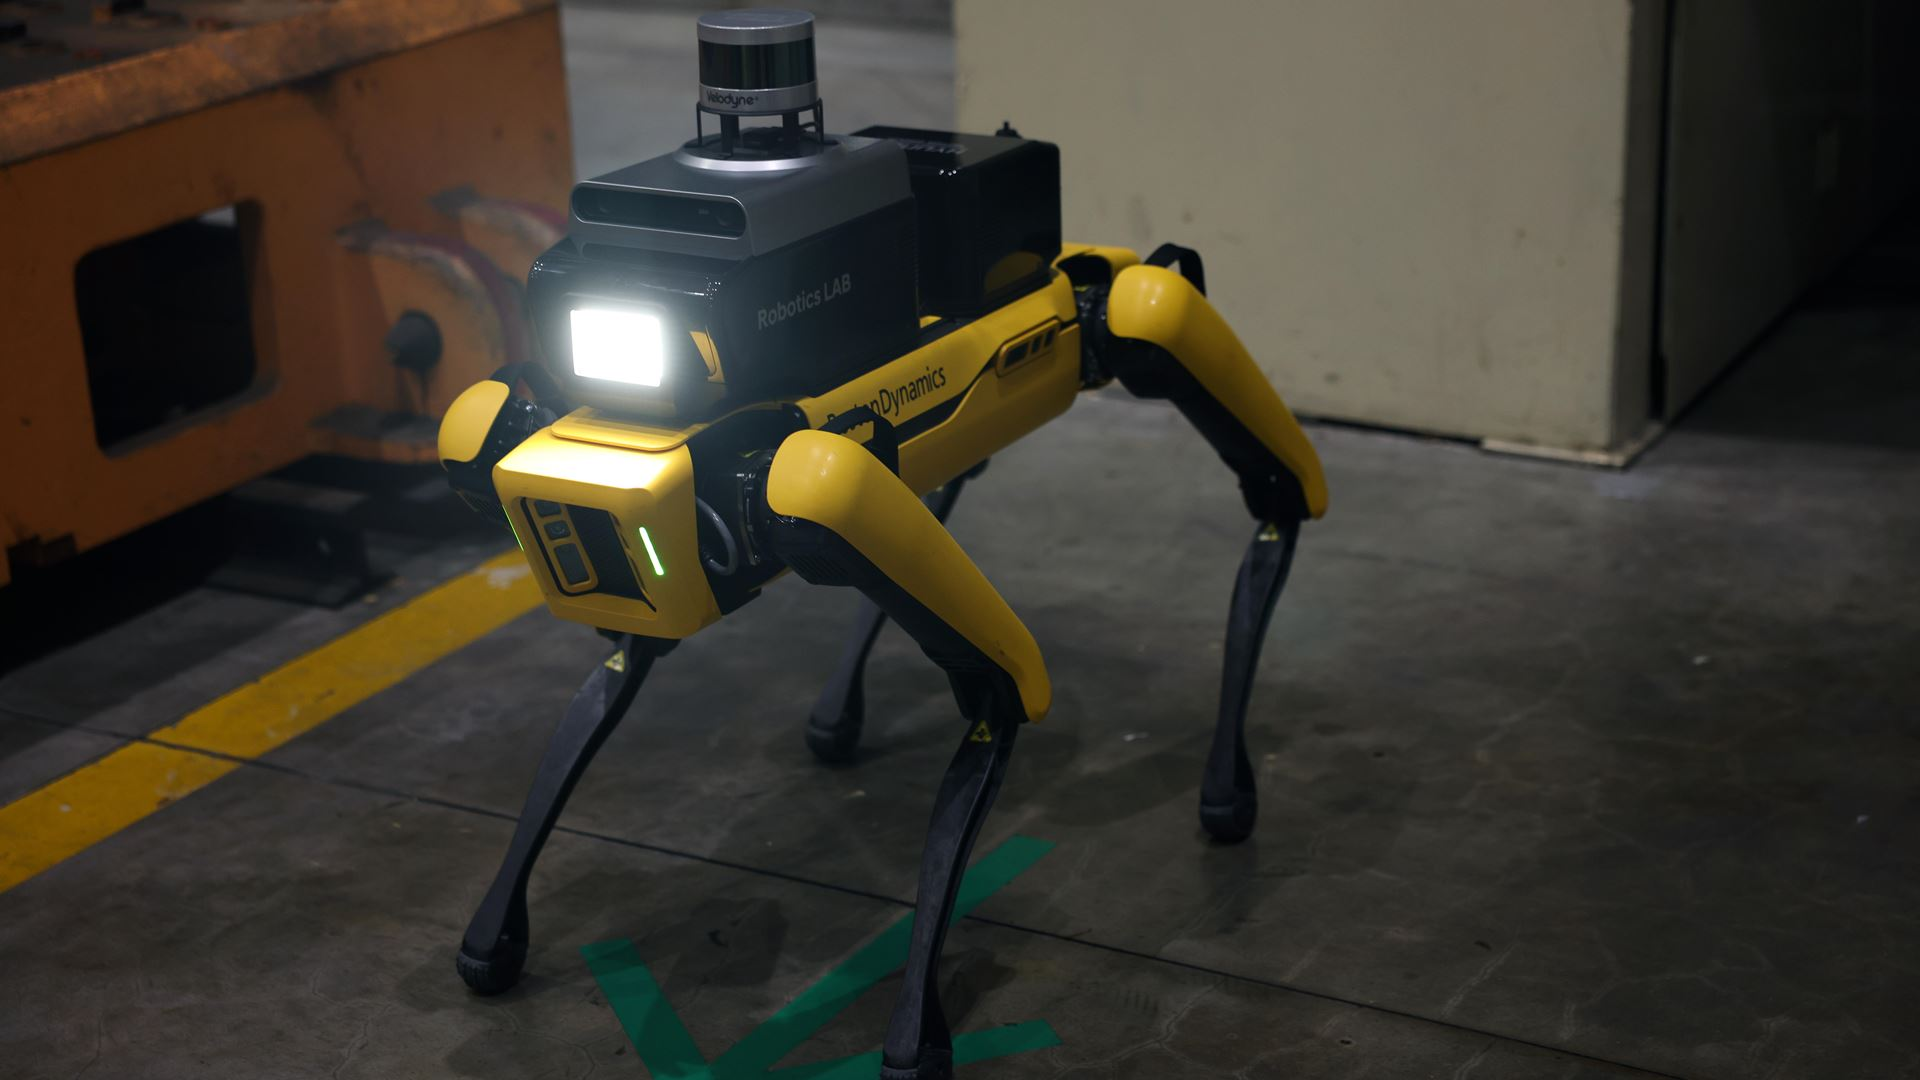 Hyundai Motor Group Launches 'Factory Safety Service Robot', First Project with Boston Dynamics, in Support of Site Safety - Image 2